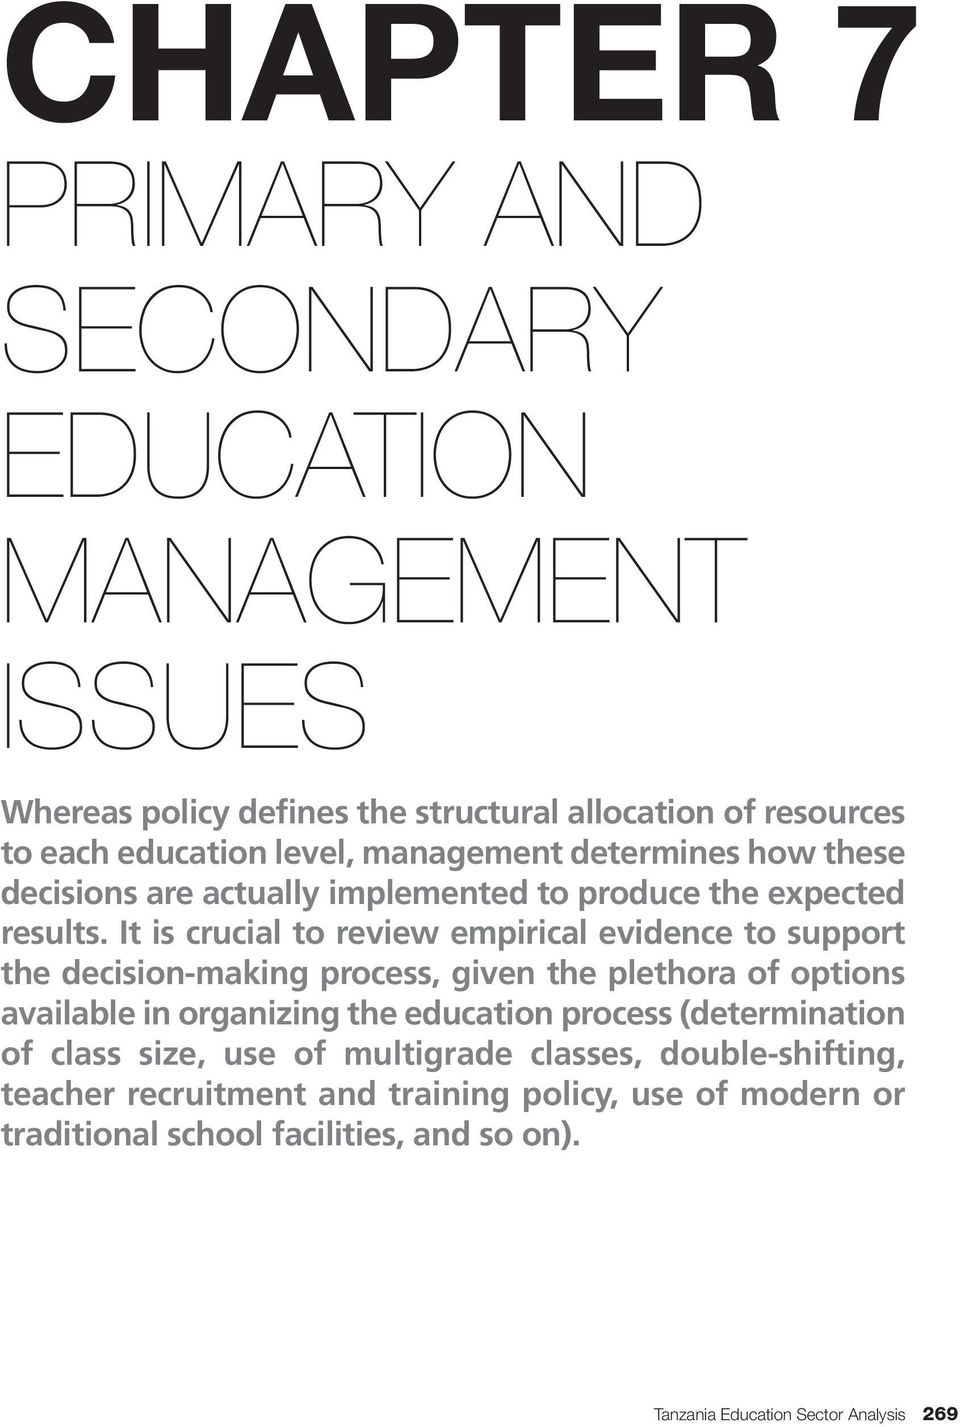 It is crucial to review empirical evidence to support the decision-making process, given the plethora of options available in organizing the education